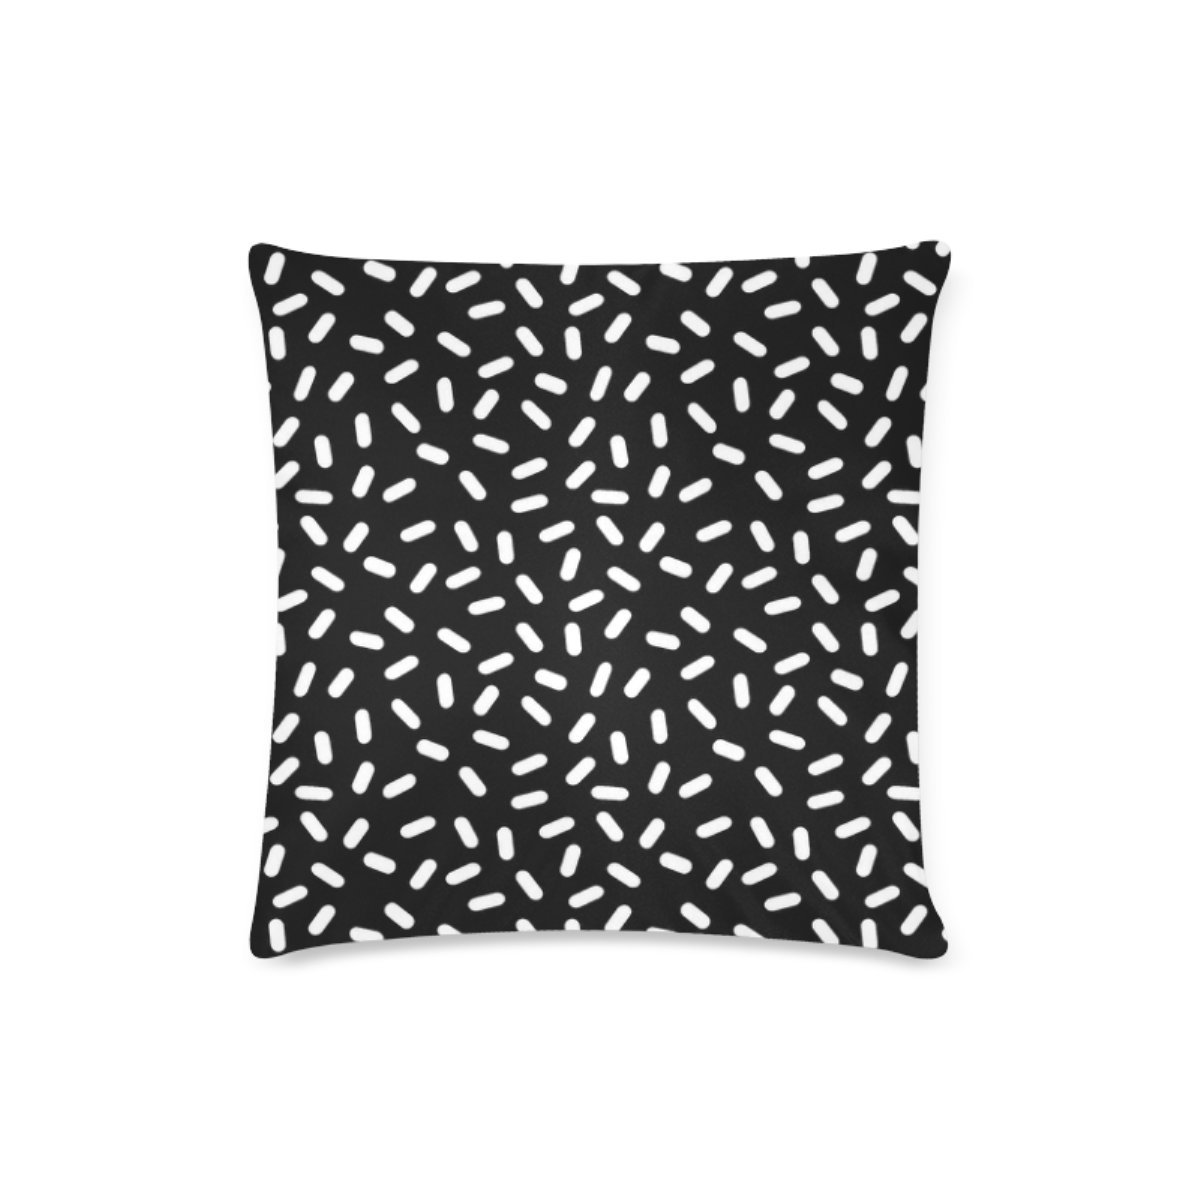 Custom Bingo Black And White Cushion Cases Zippered Throw Pillow Covers 16 by 16 Inches